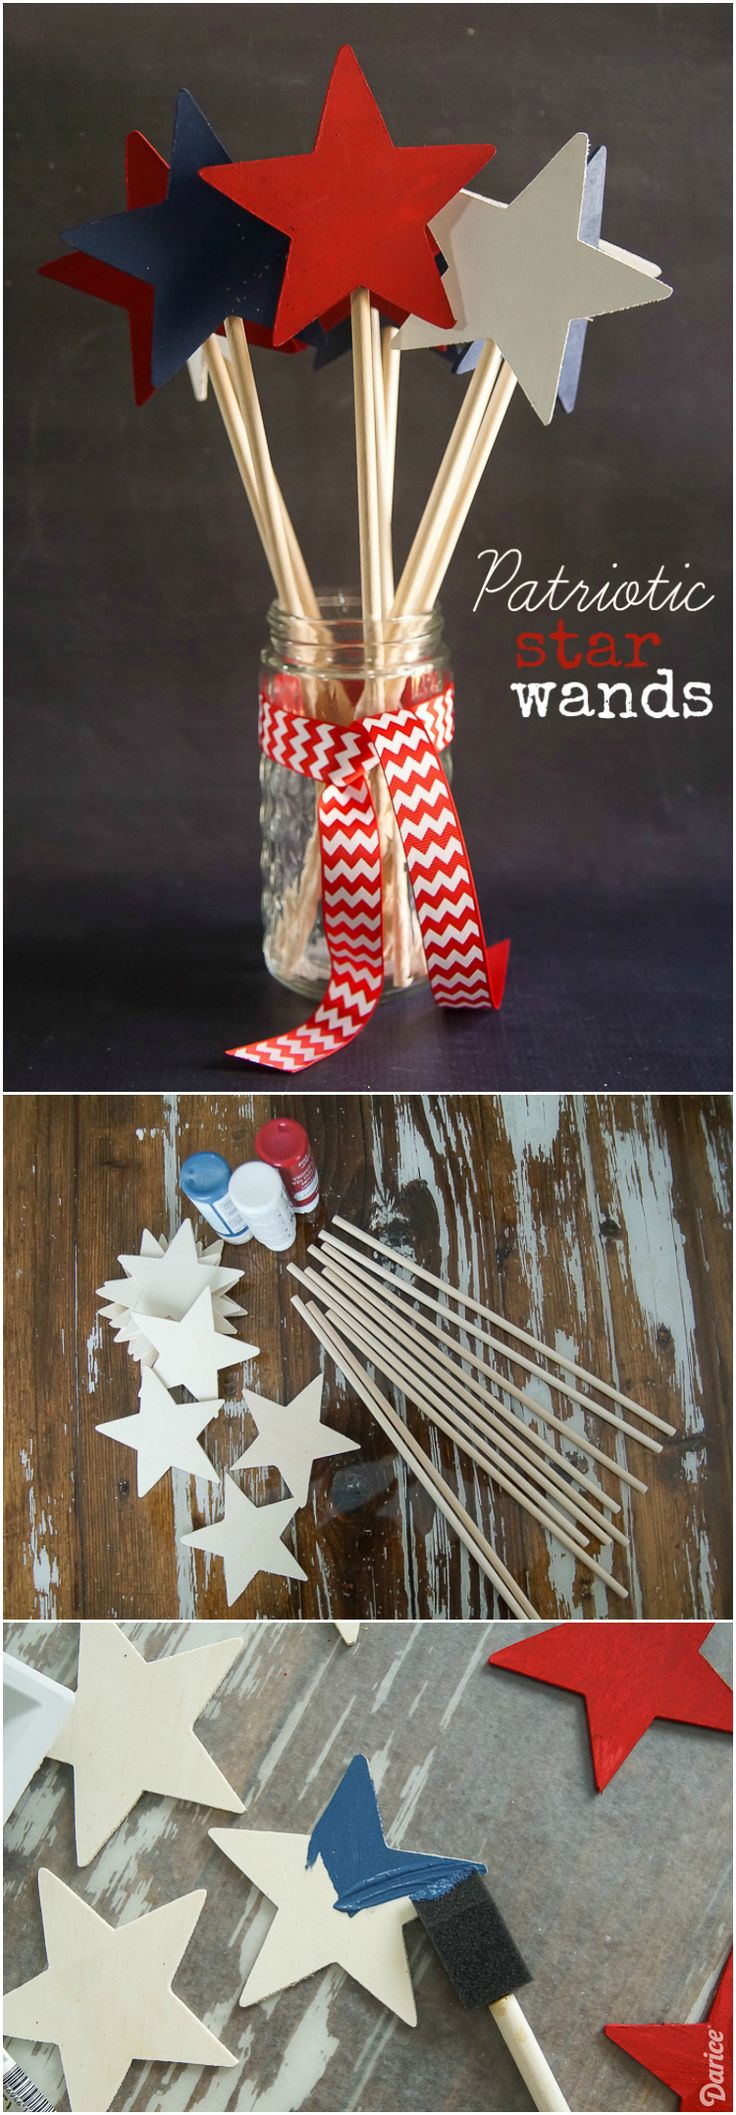 Kids will love waving these patriotic craft star wands at the 4th of July parade!